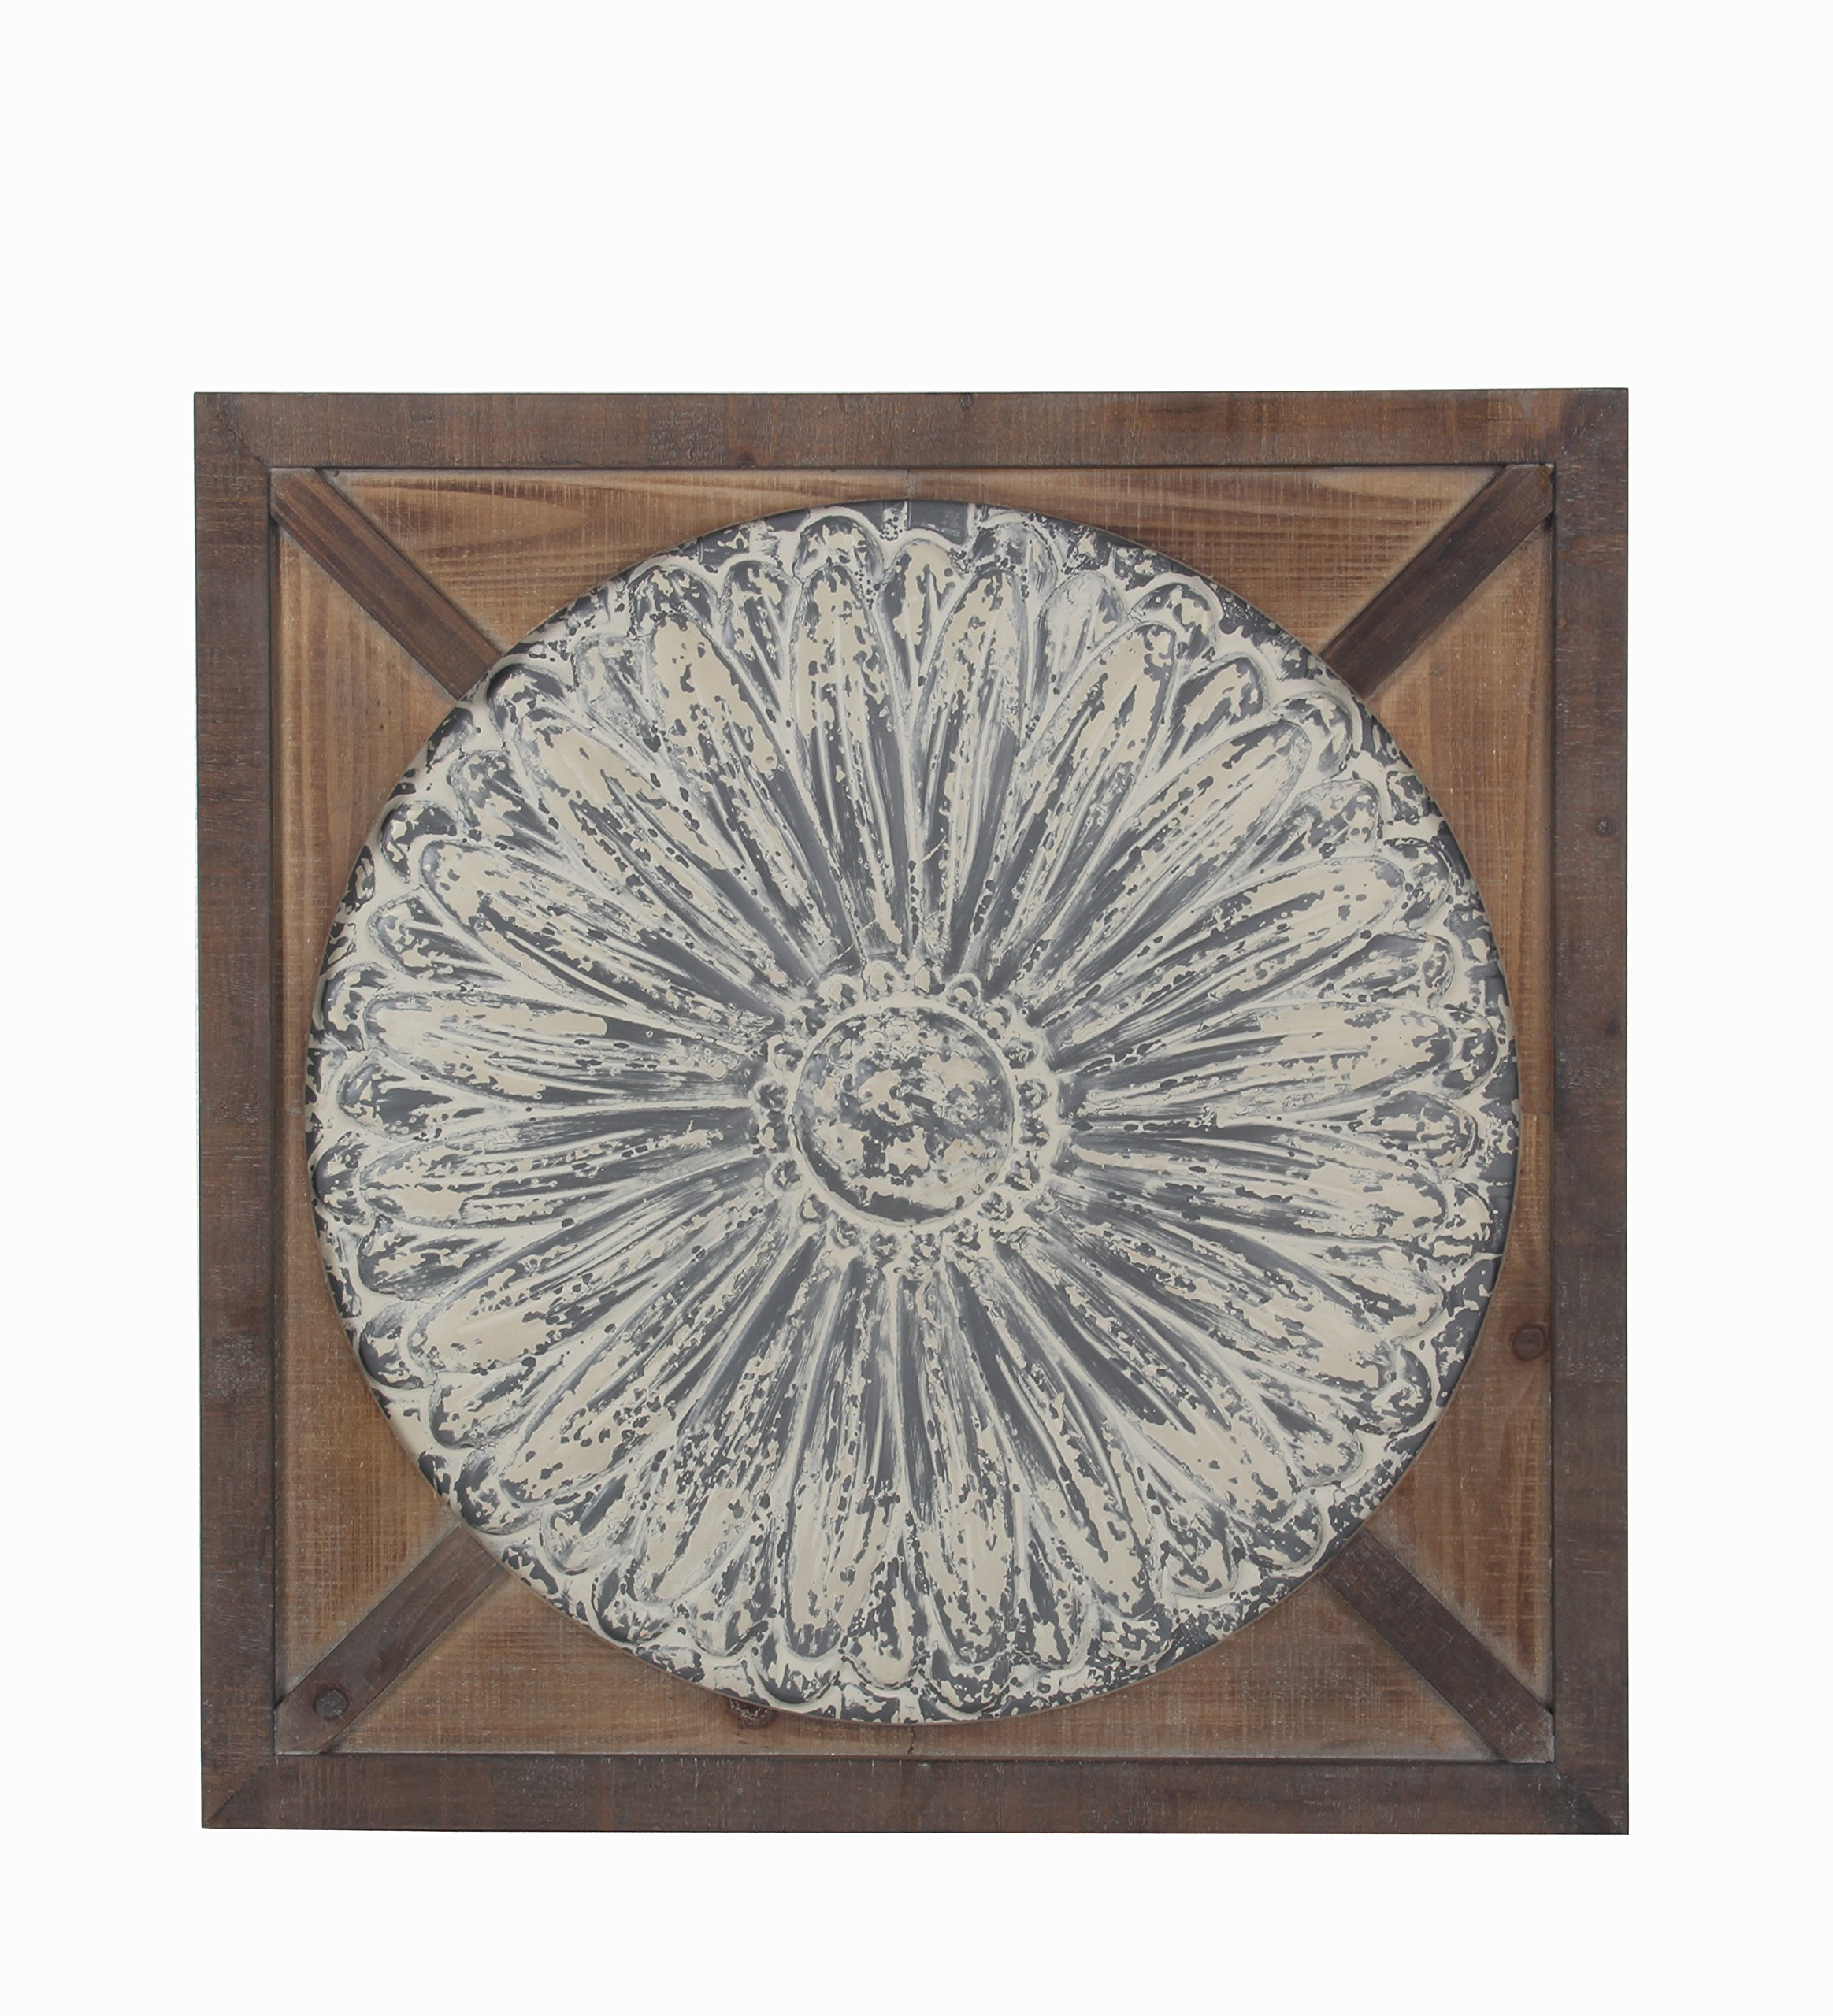 Privilege 30122 Wall Décor Medallion Furniture Replacement Parts